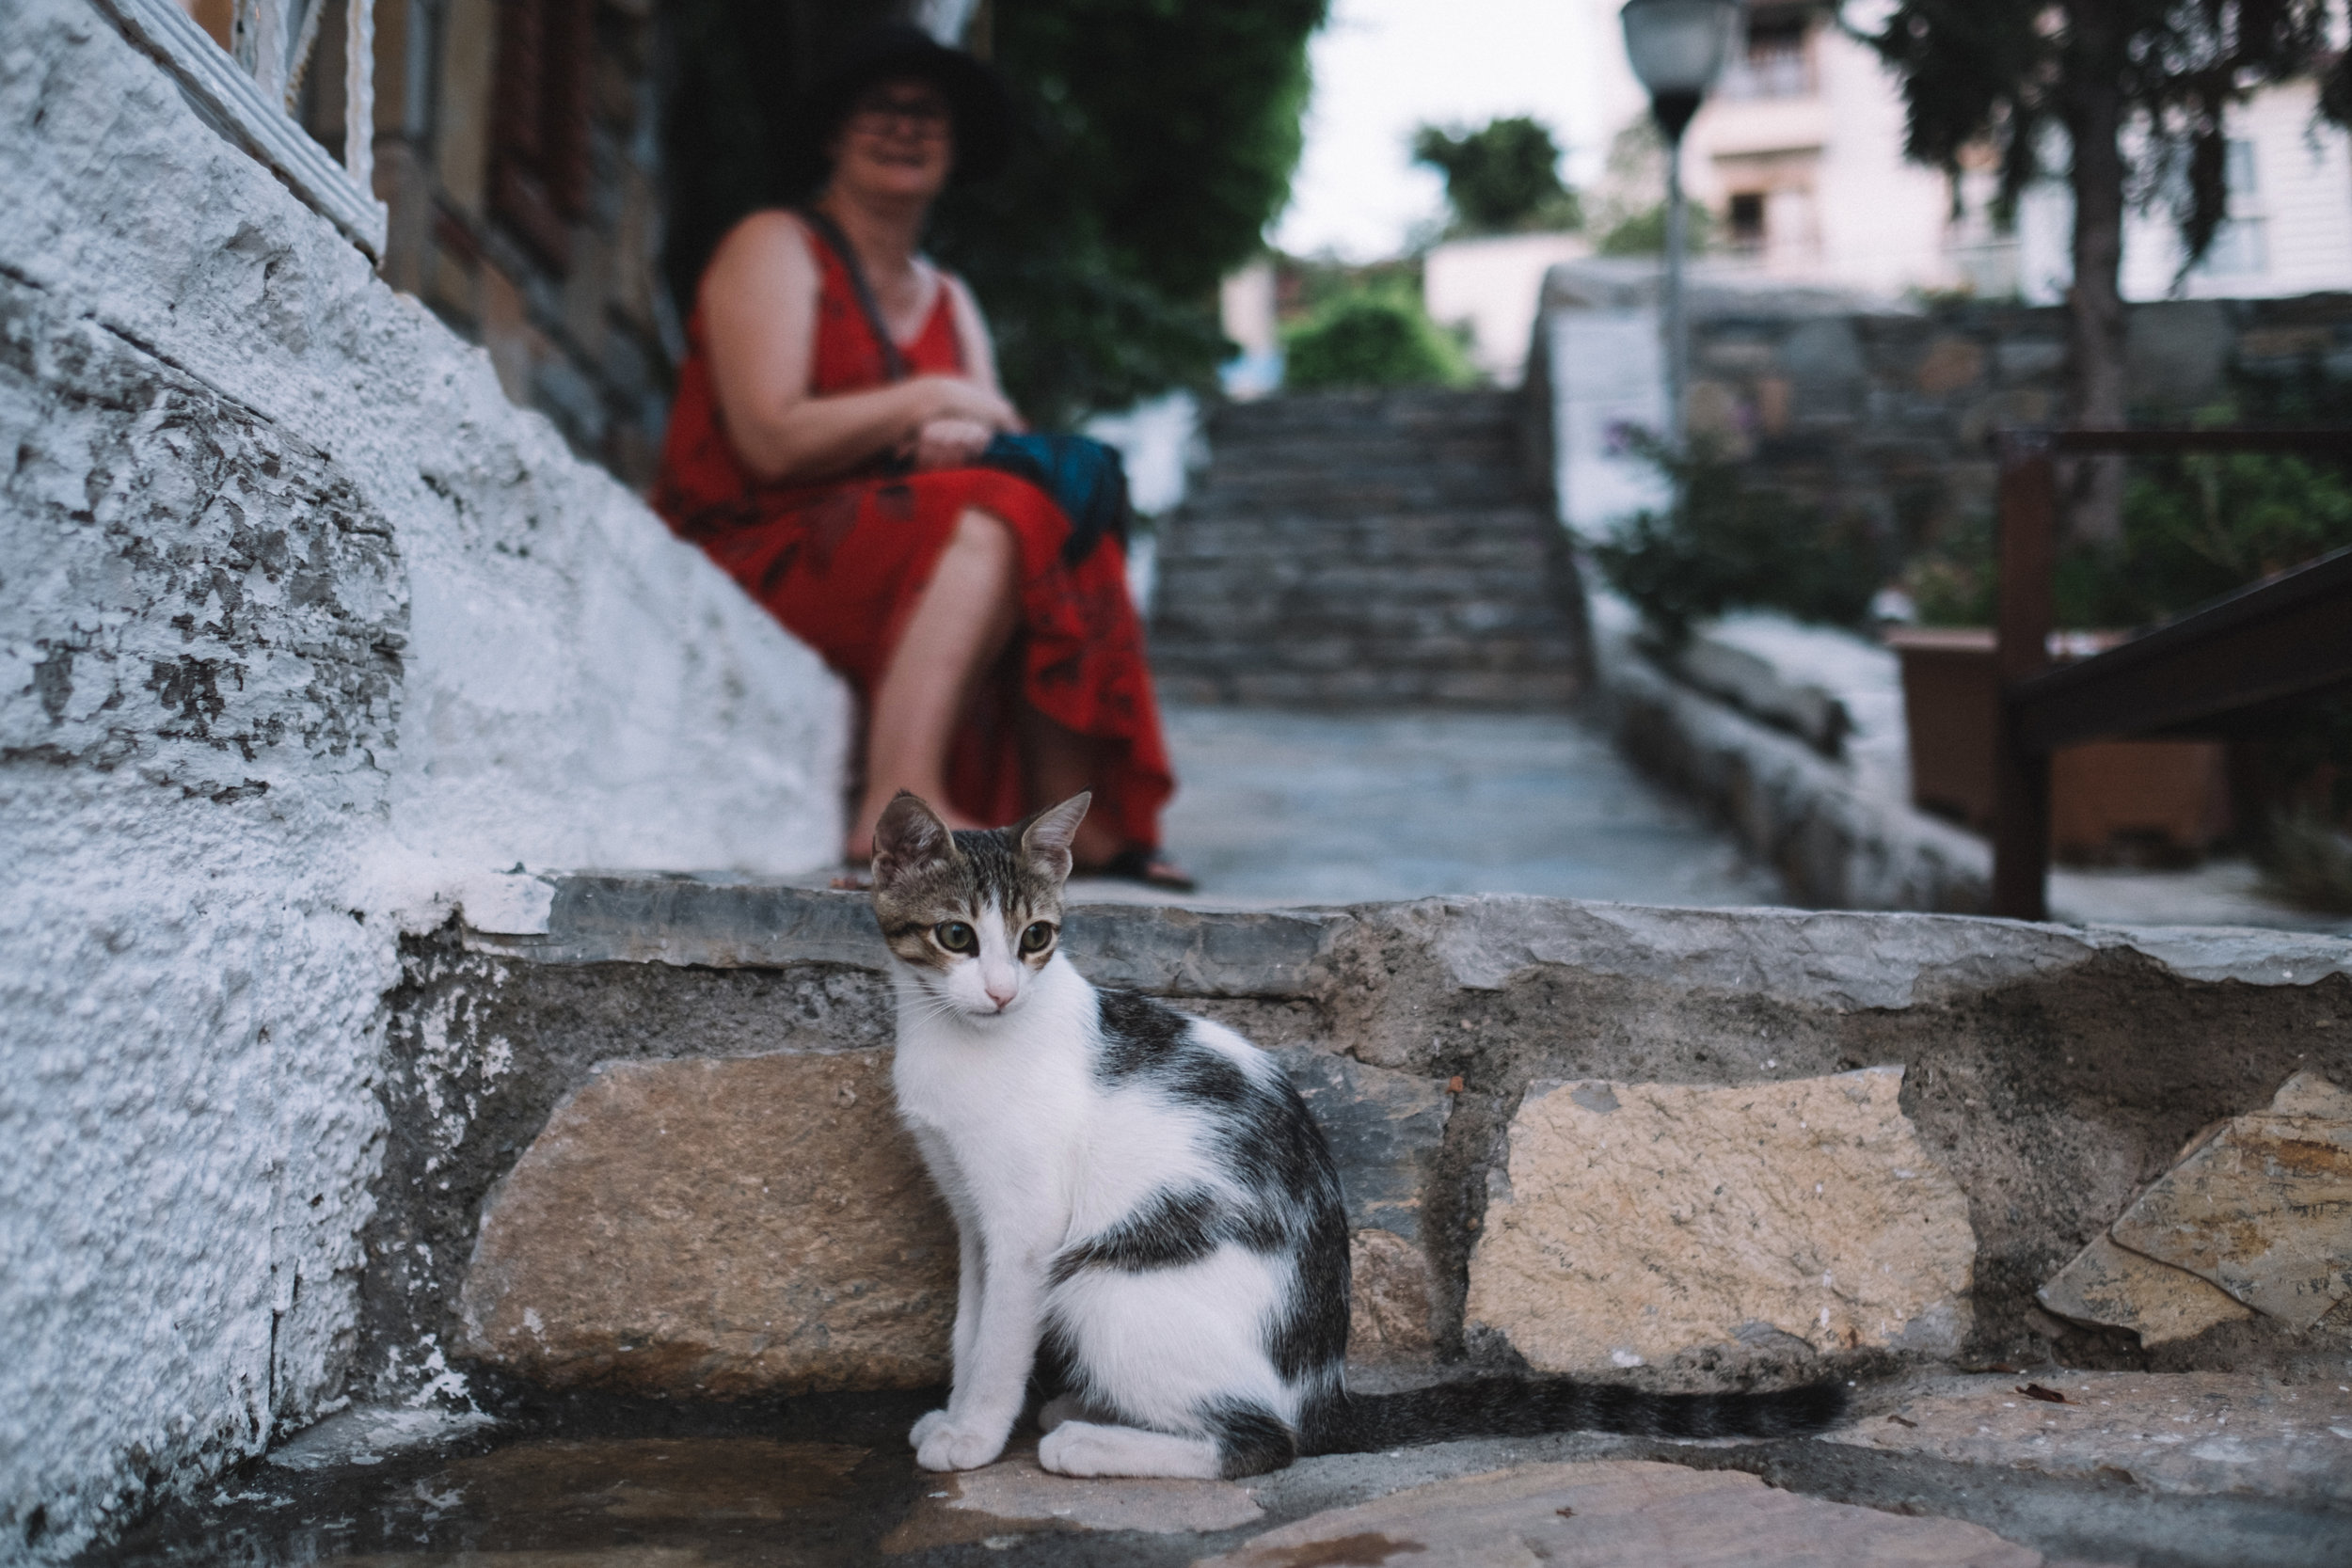 A woman is looking at a stray cat in Bodrum Turkey